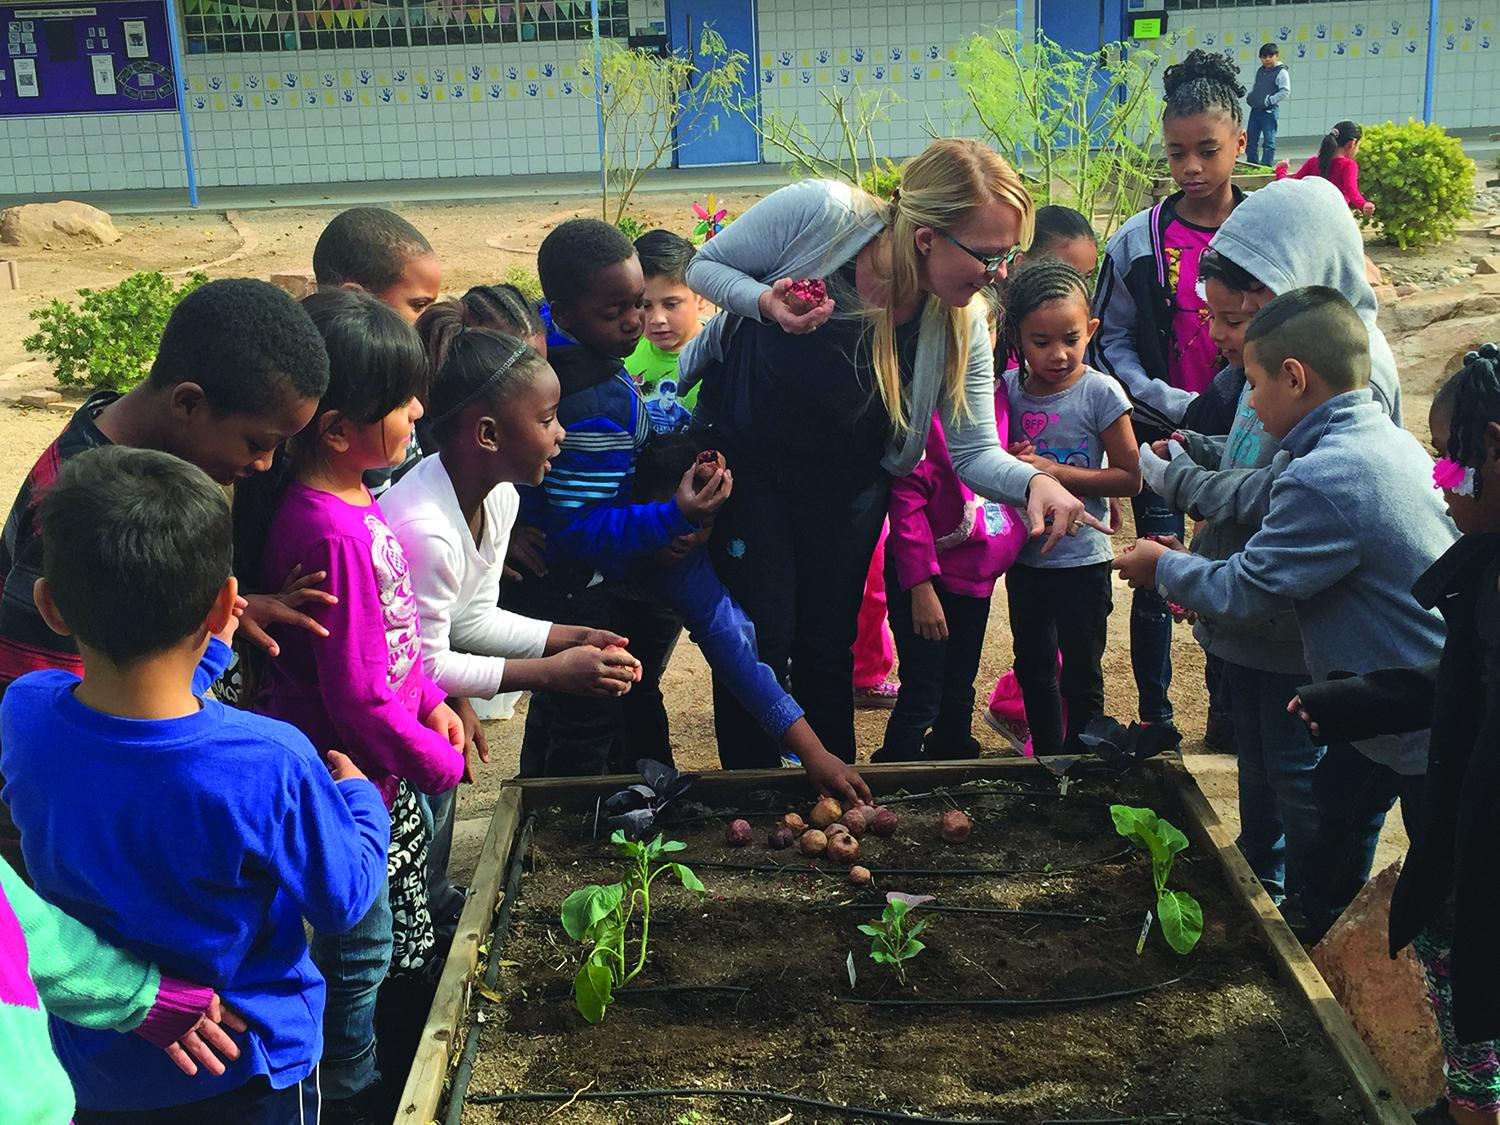 In Las Vegas, an initiative called Green Our Planet builds school gardens to help students learn about health, nutrition, and sustainable food production. Photo courtesy of Green Our Planet